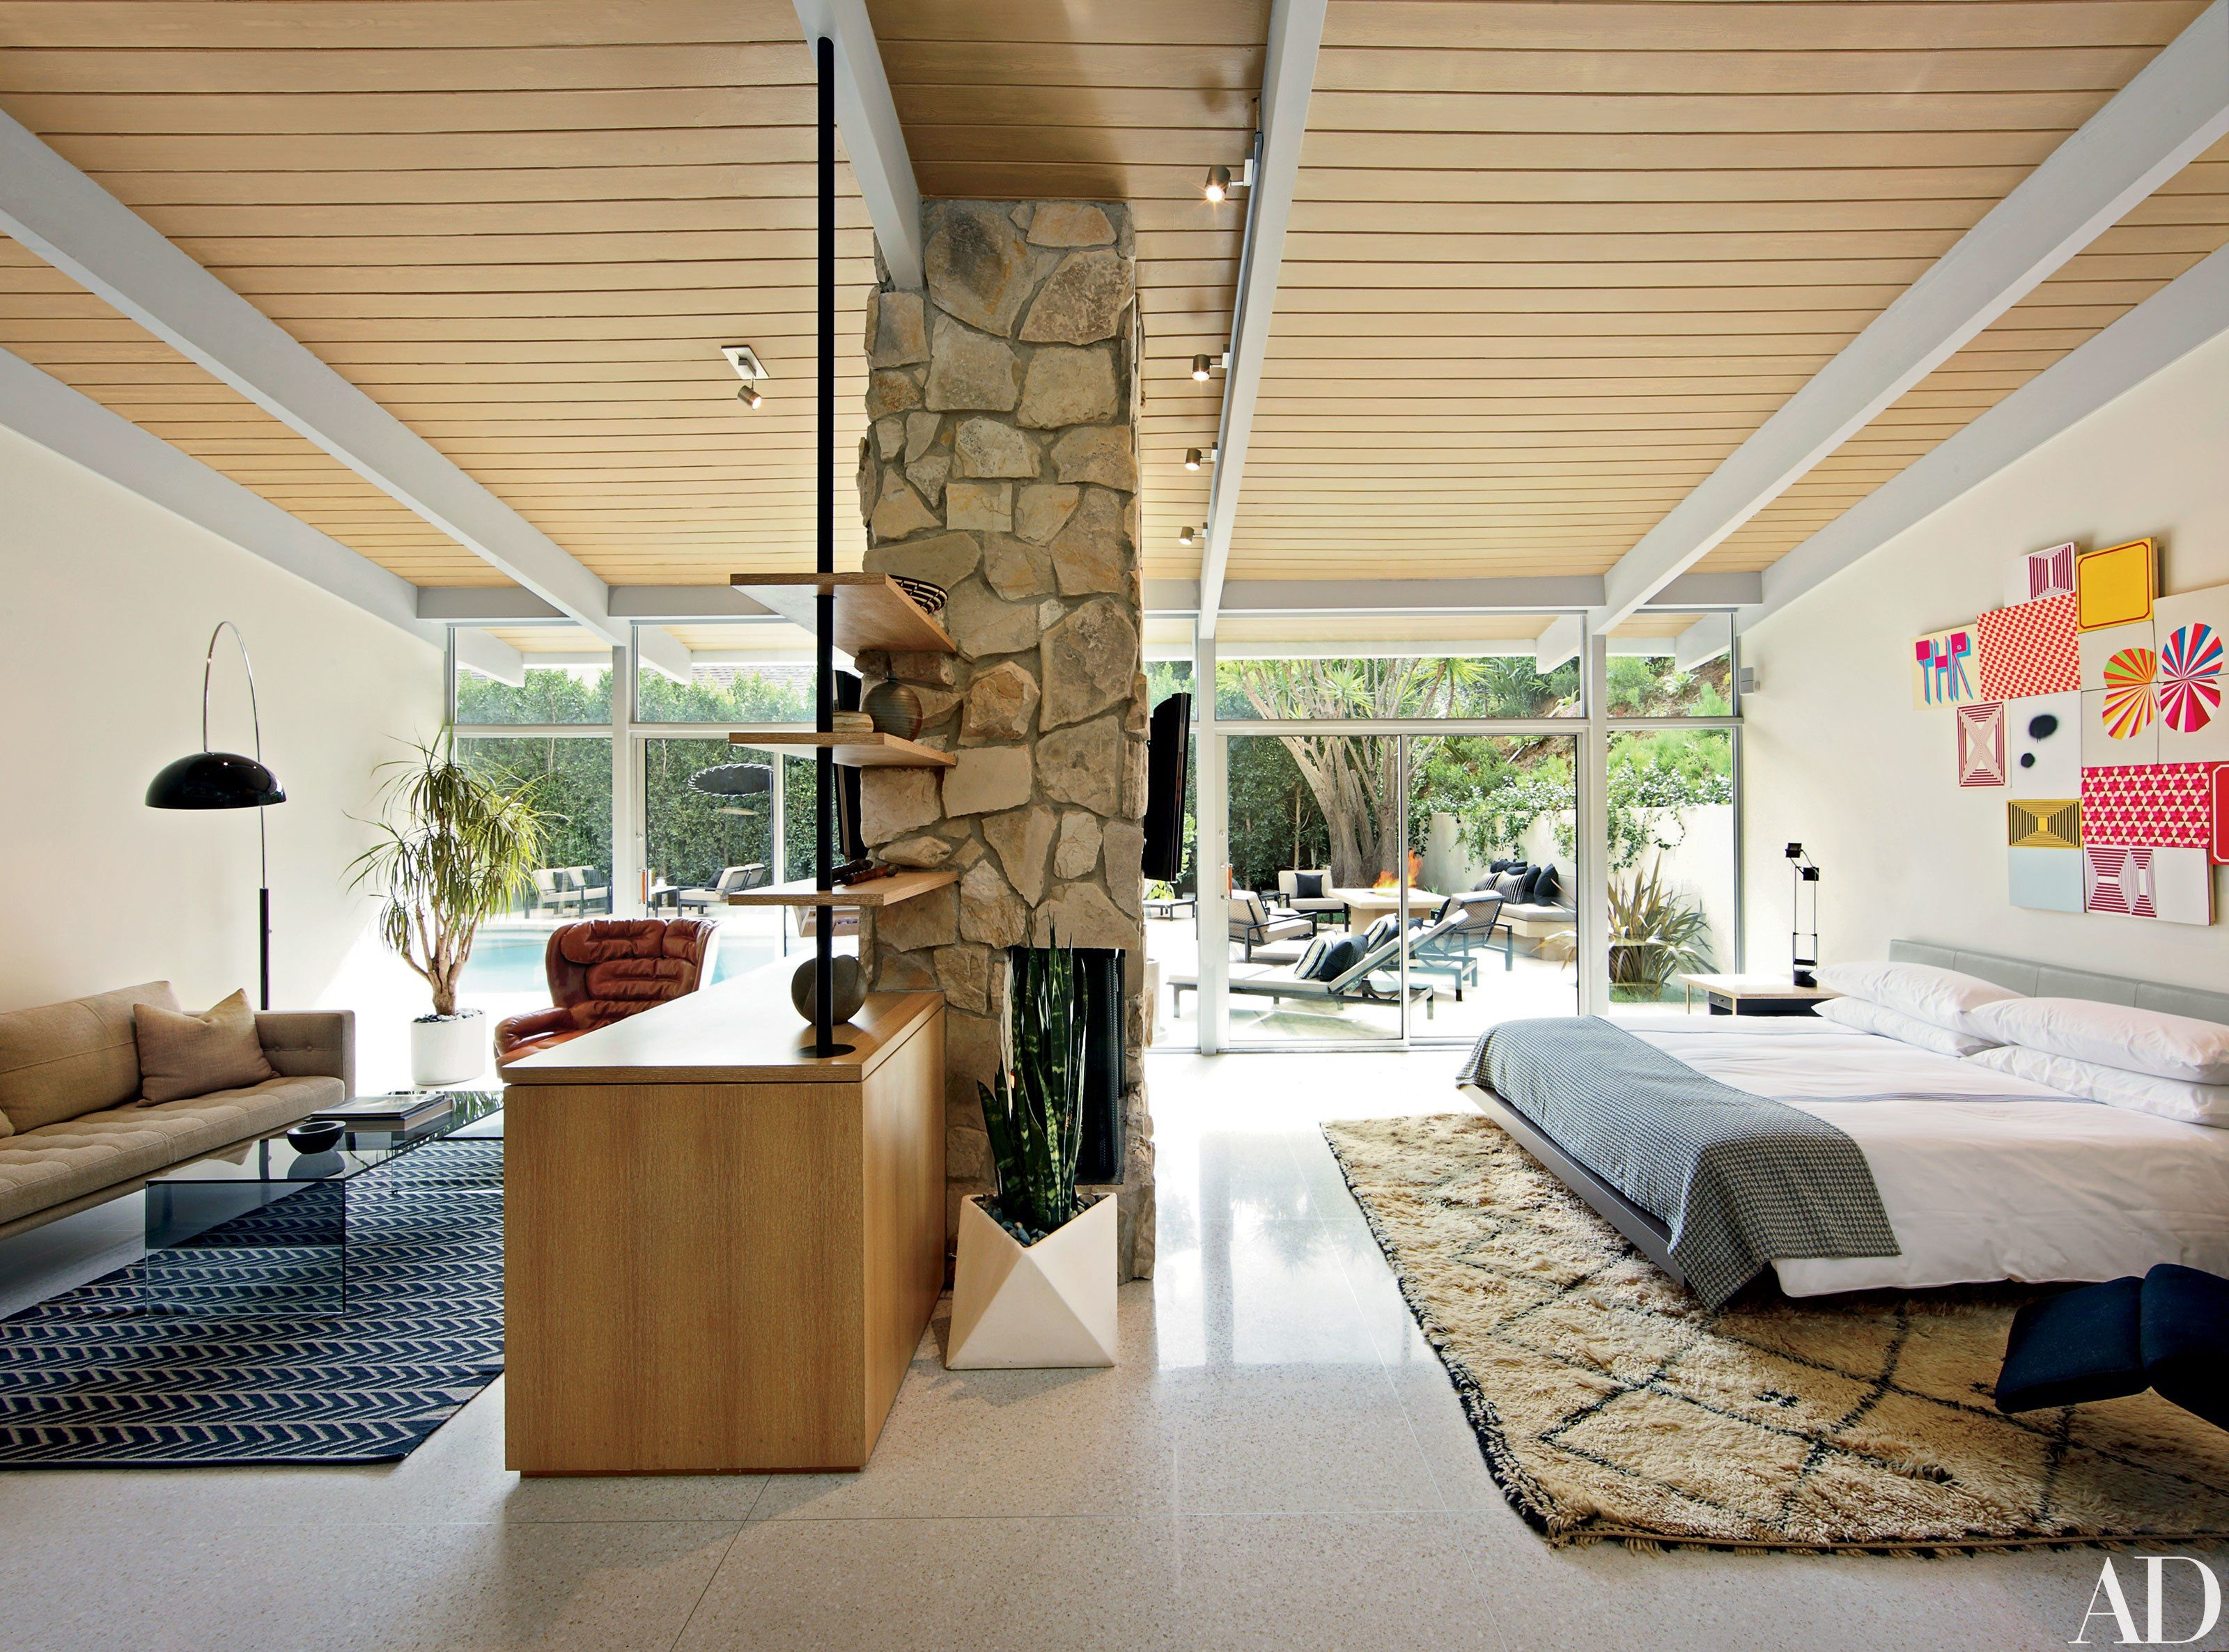 Jennifer aniston home interior hotelier jason pomerancus midcentury home in hollywood  home decor